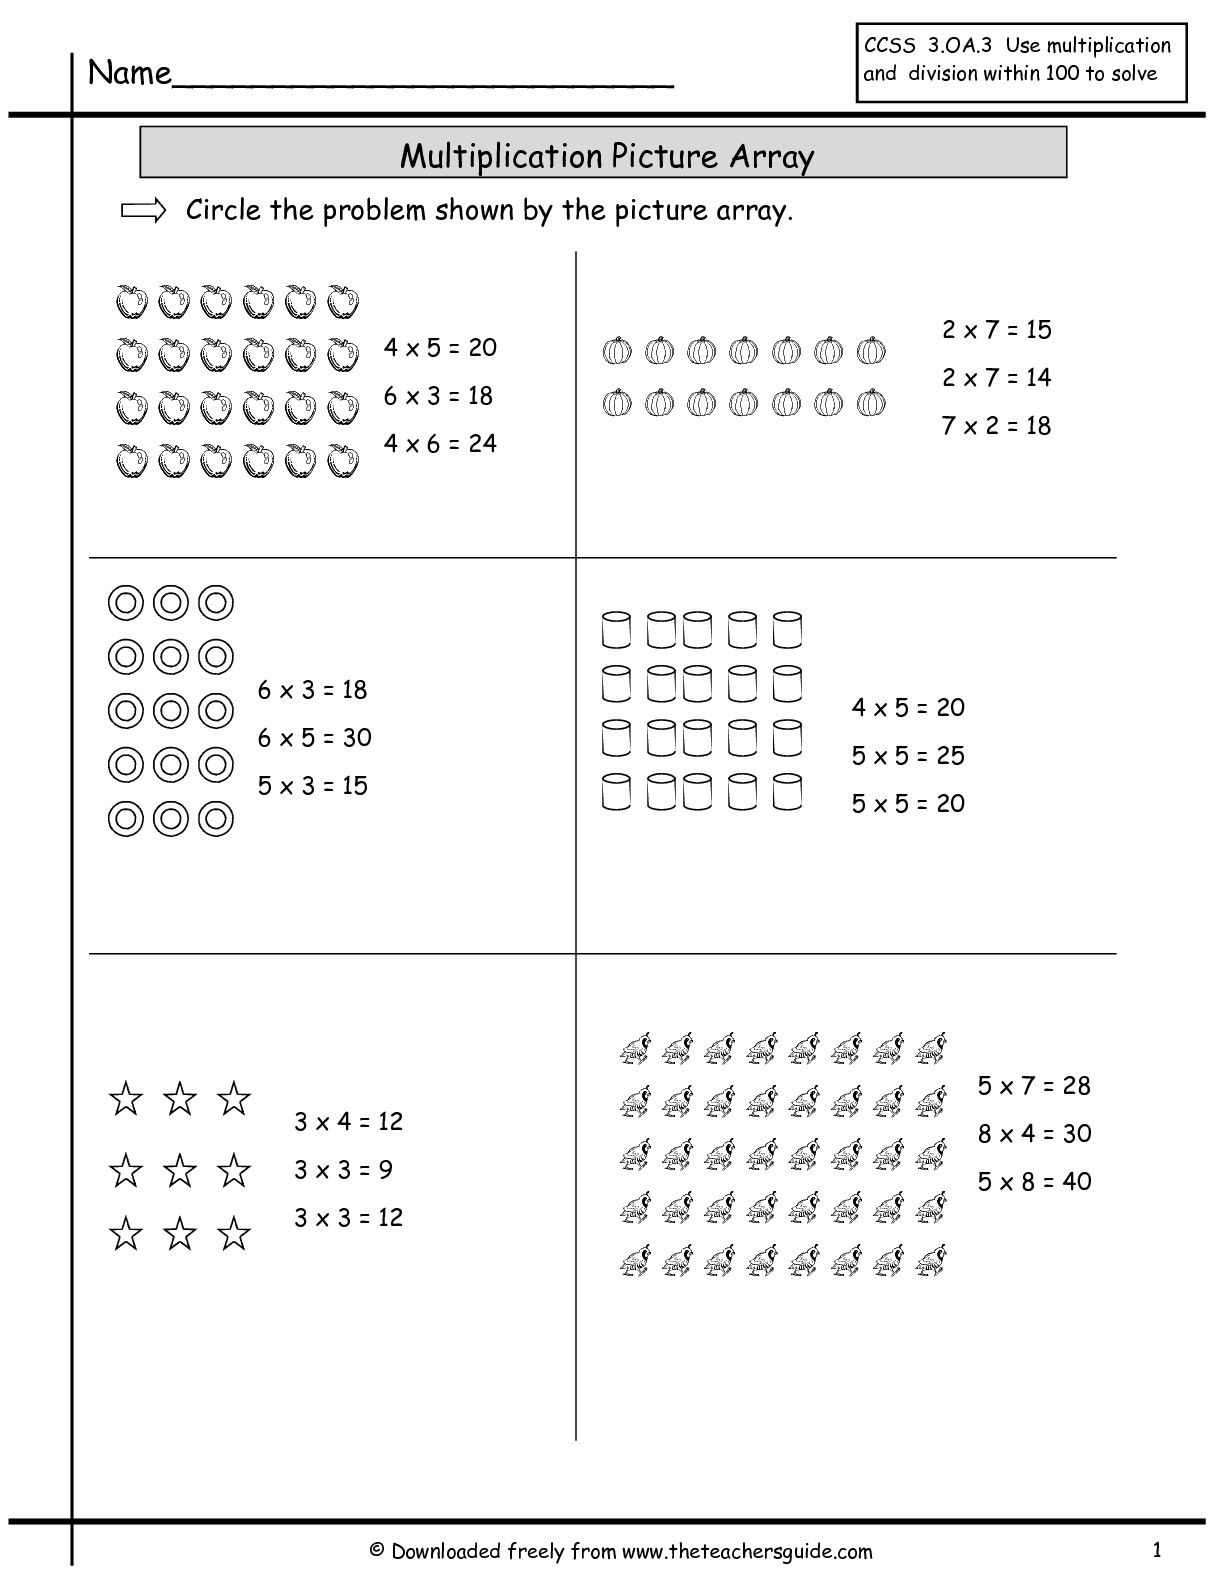 worksheet Multiplication Worksheets For 2nd Grade multiplication array worksheets math games pinterest 12 photos of arrays worksheet grade